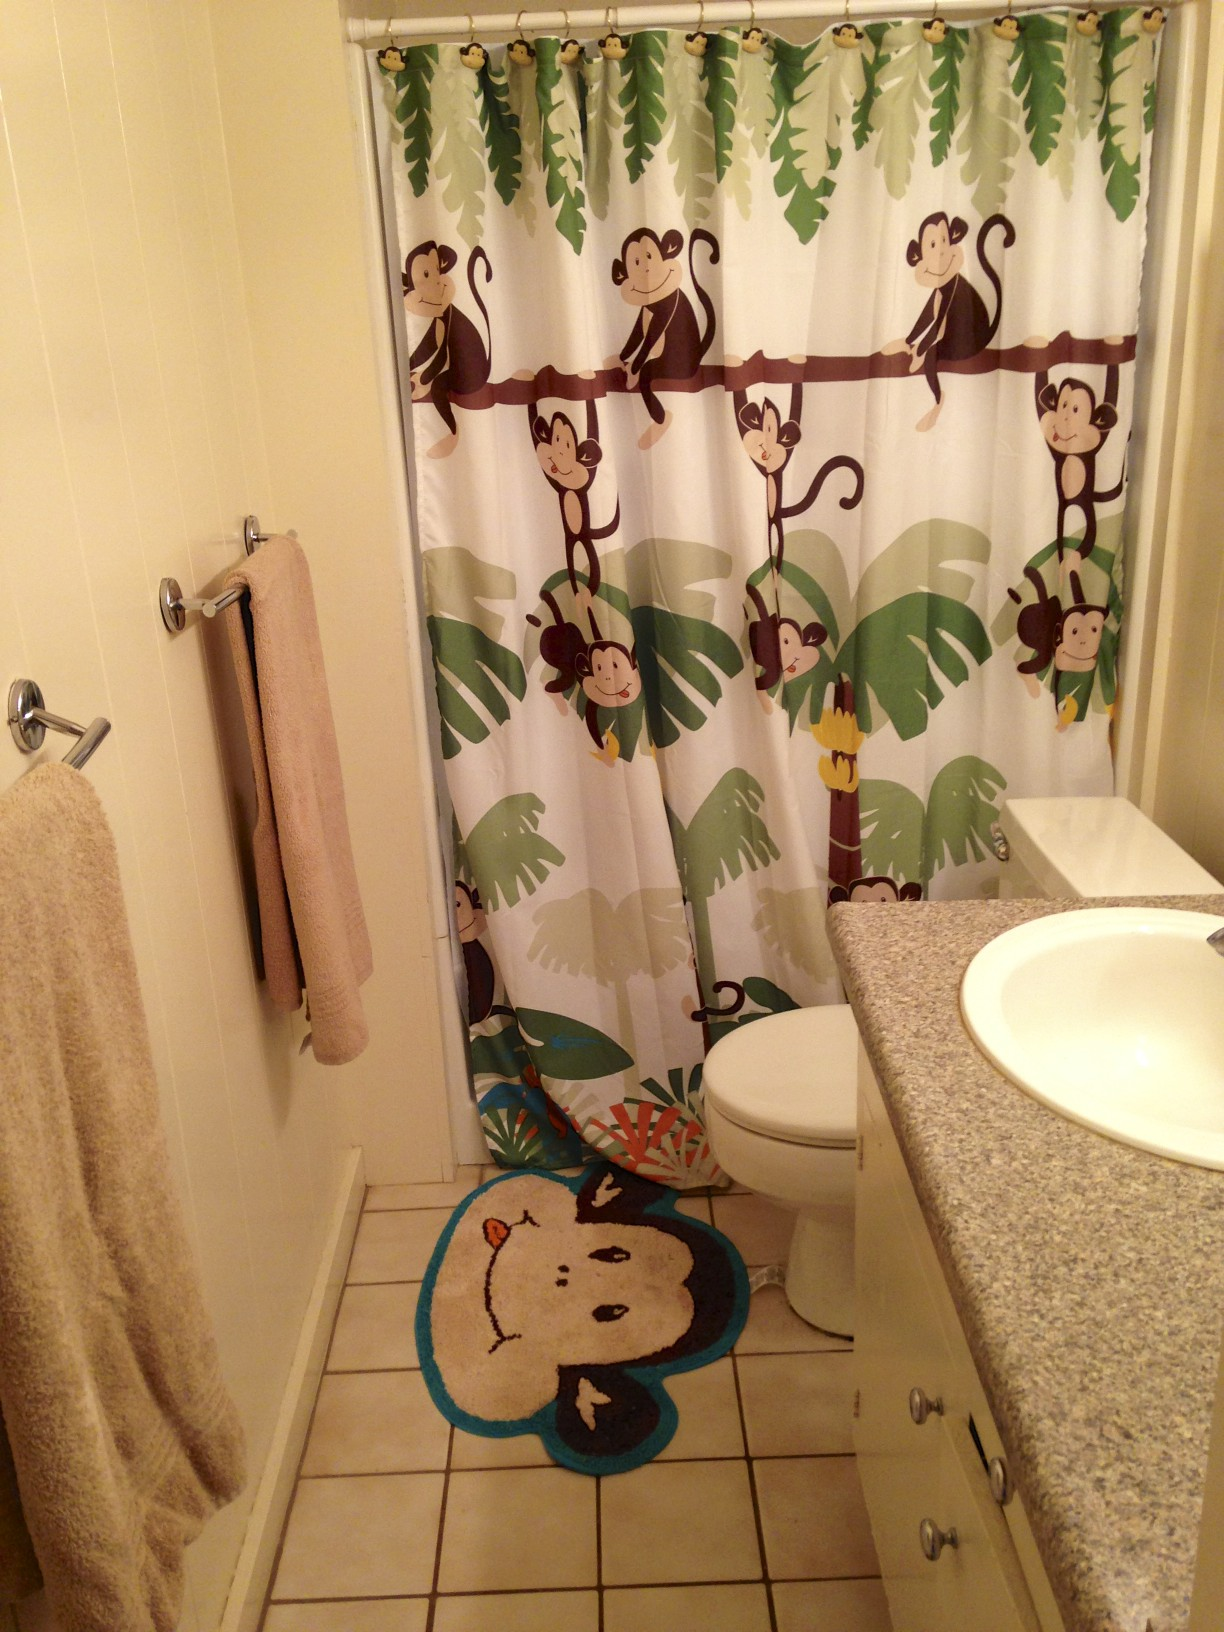 Paia Maui Vacation Rental Bathroom located next to the girls room.